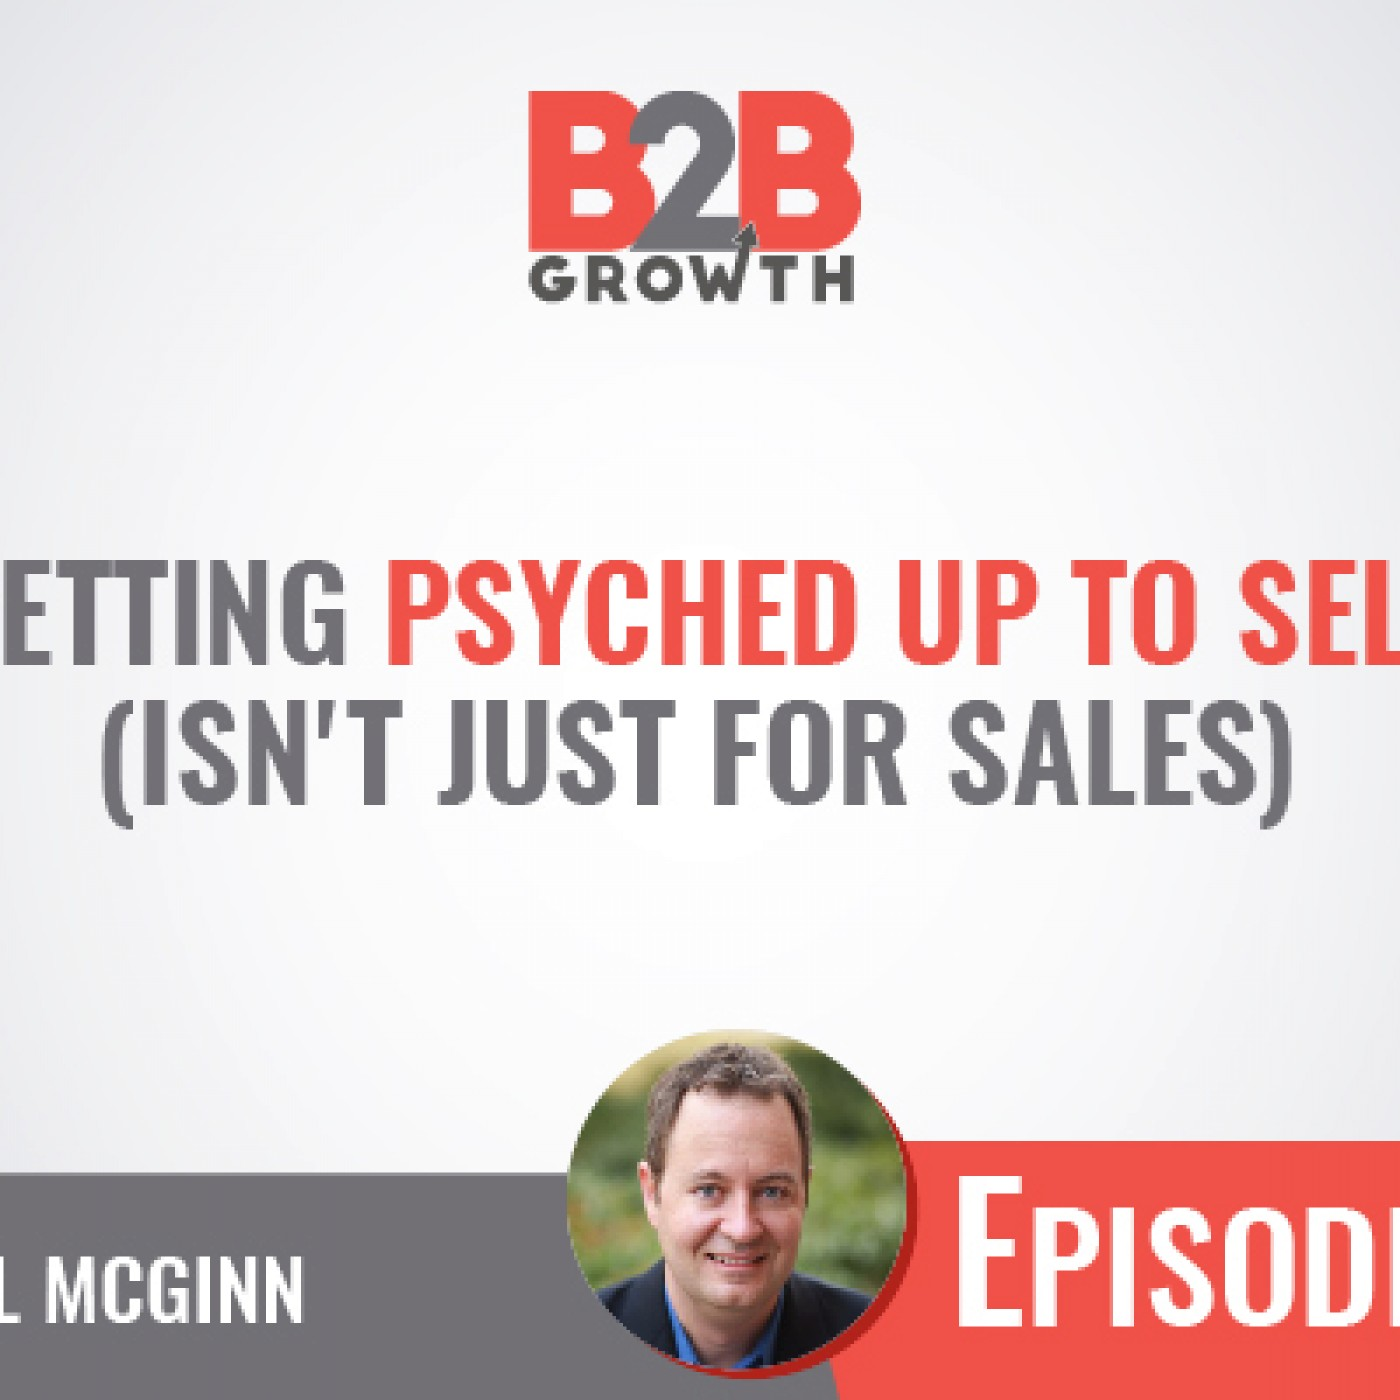 530: Getting Psyched Up To Sell (Isn't Just For Sales) w/ Daniel McGinn